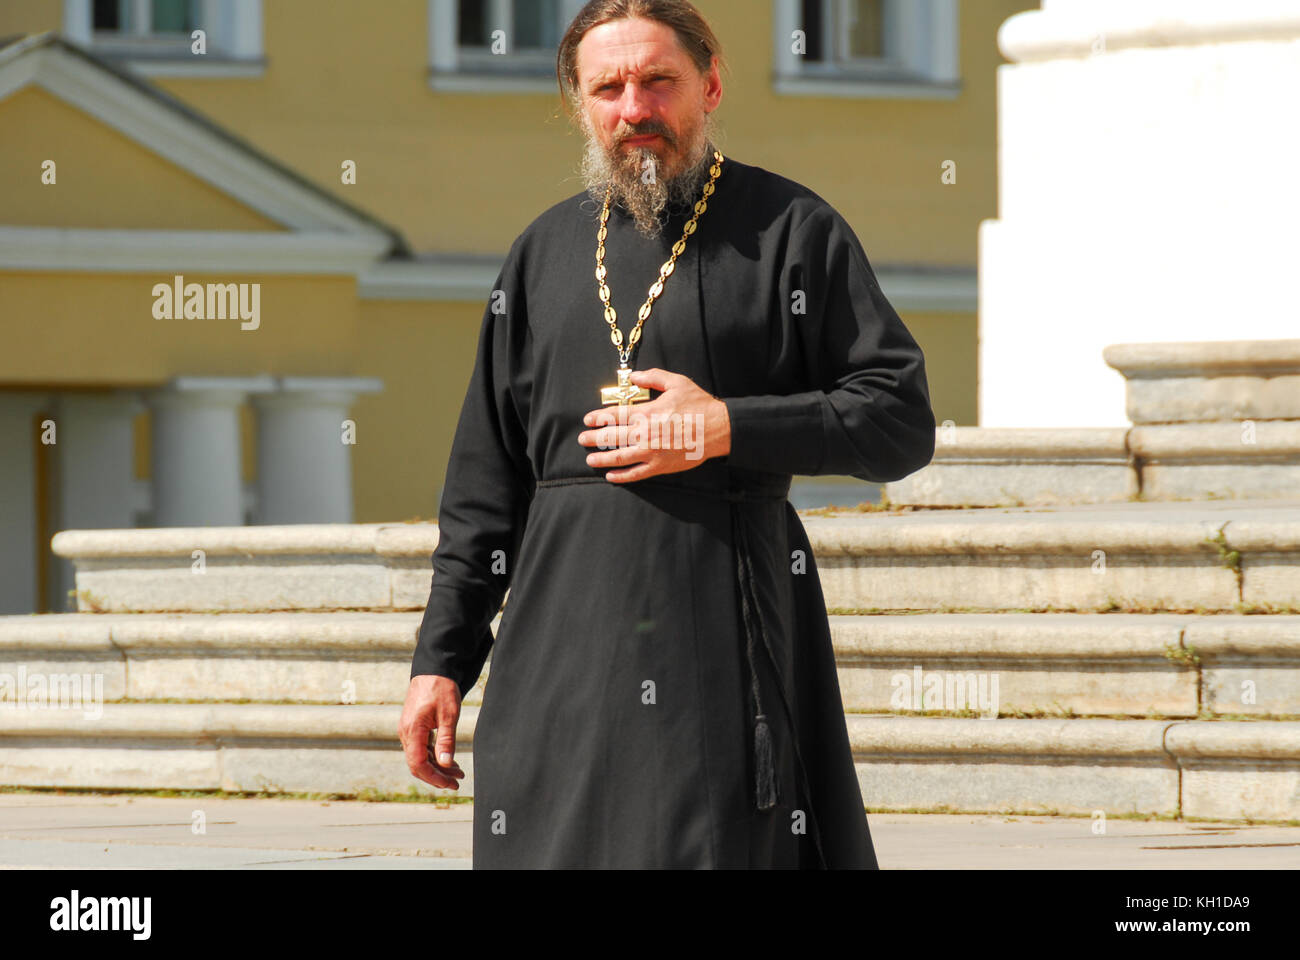 Sergiev, Posad - August 12, 2007: Russian Orthodox priest with a gold cross in Sergiev Posad, Russia - Stock Image